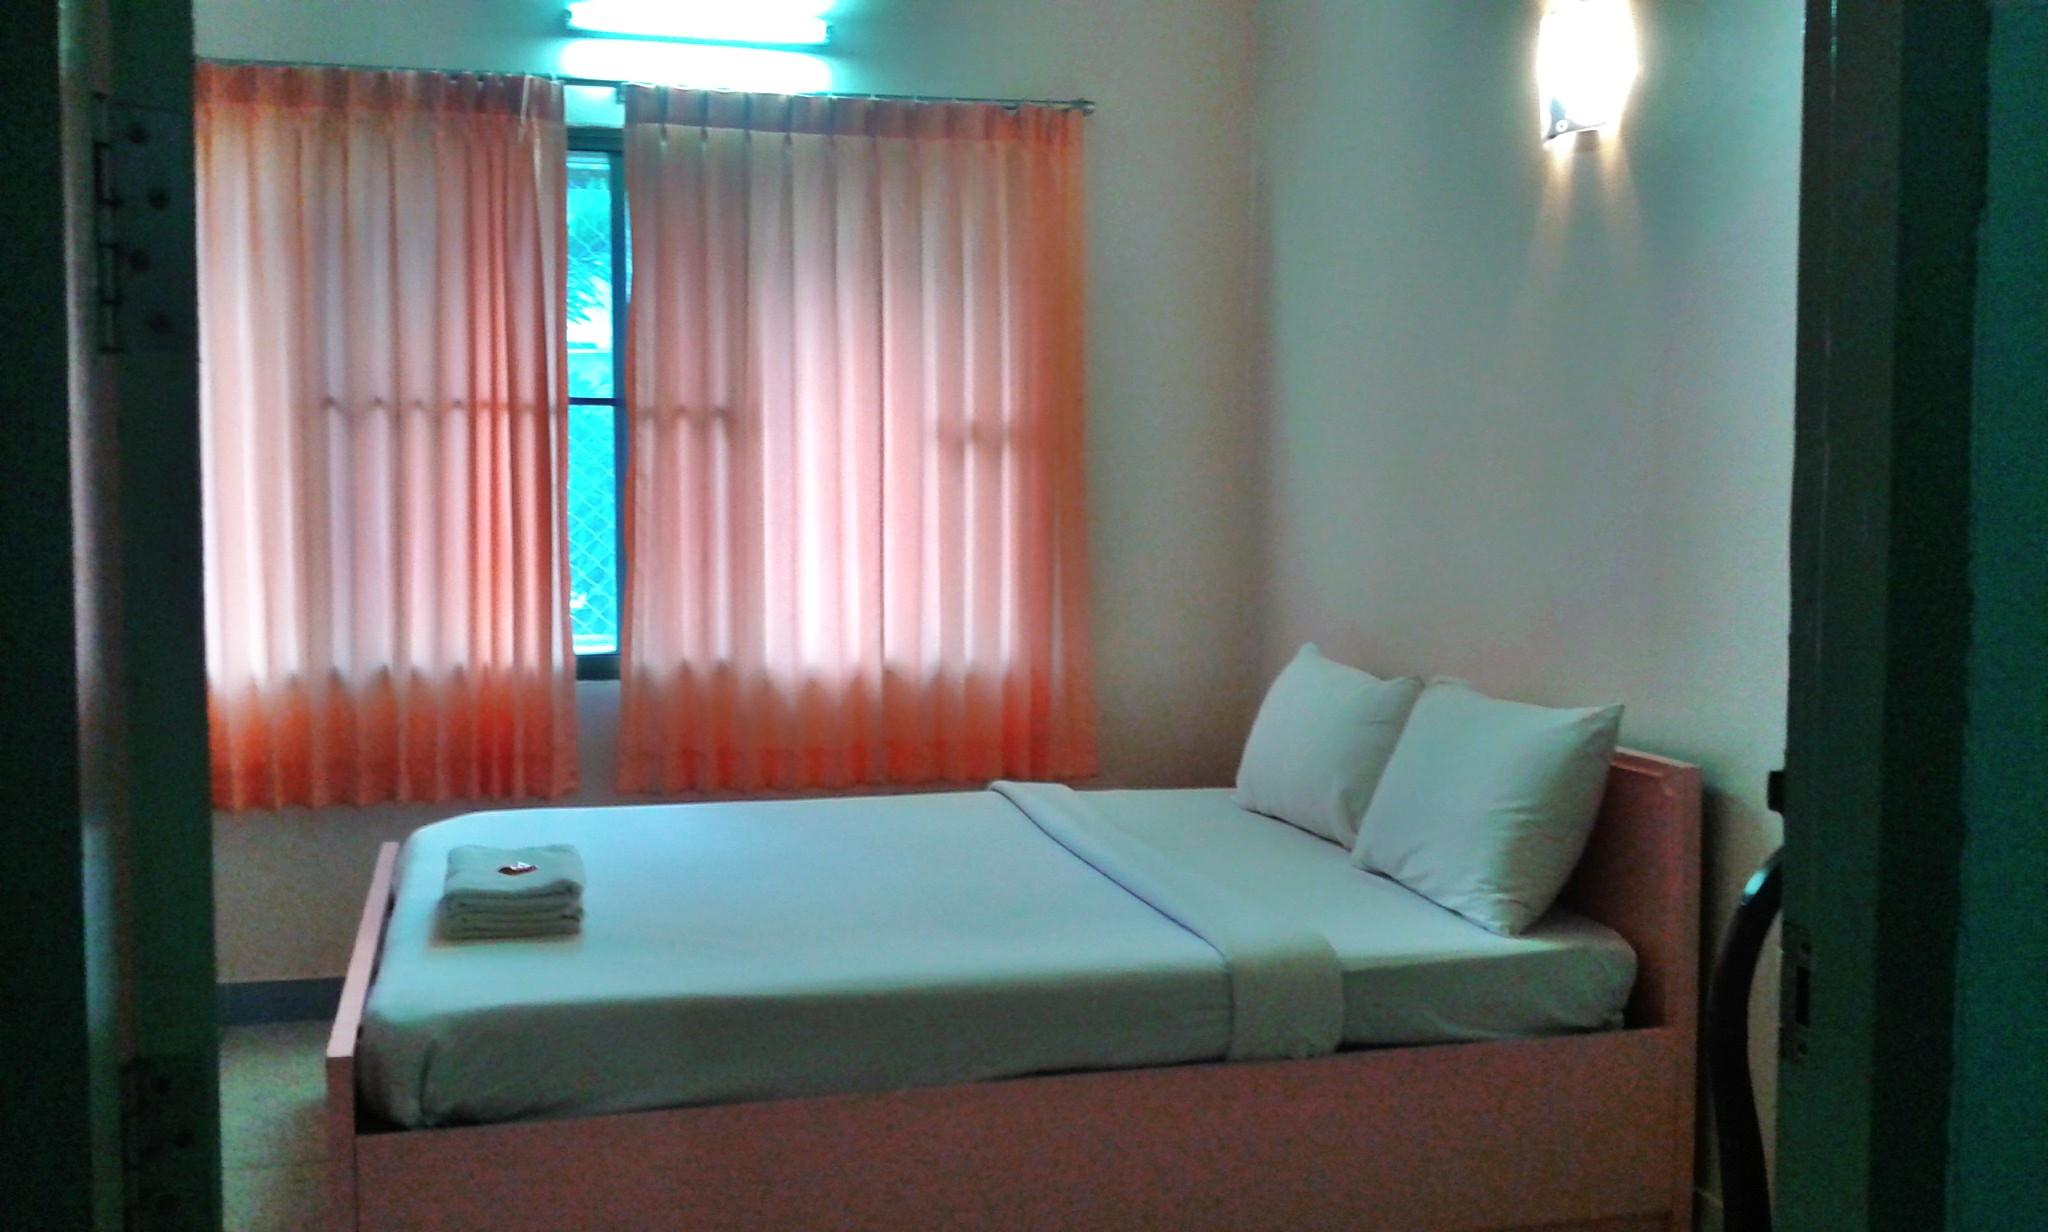 Bedroom for 2 person at Duangthida Apartment,Bedroom for 2 person at Duangthida Apartment